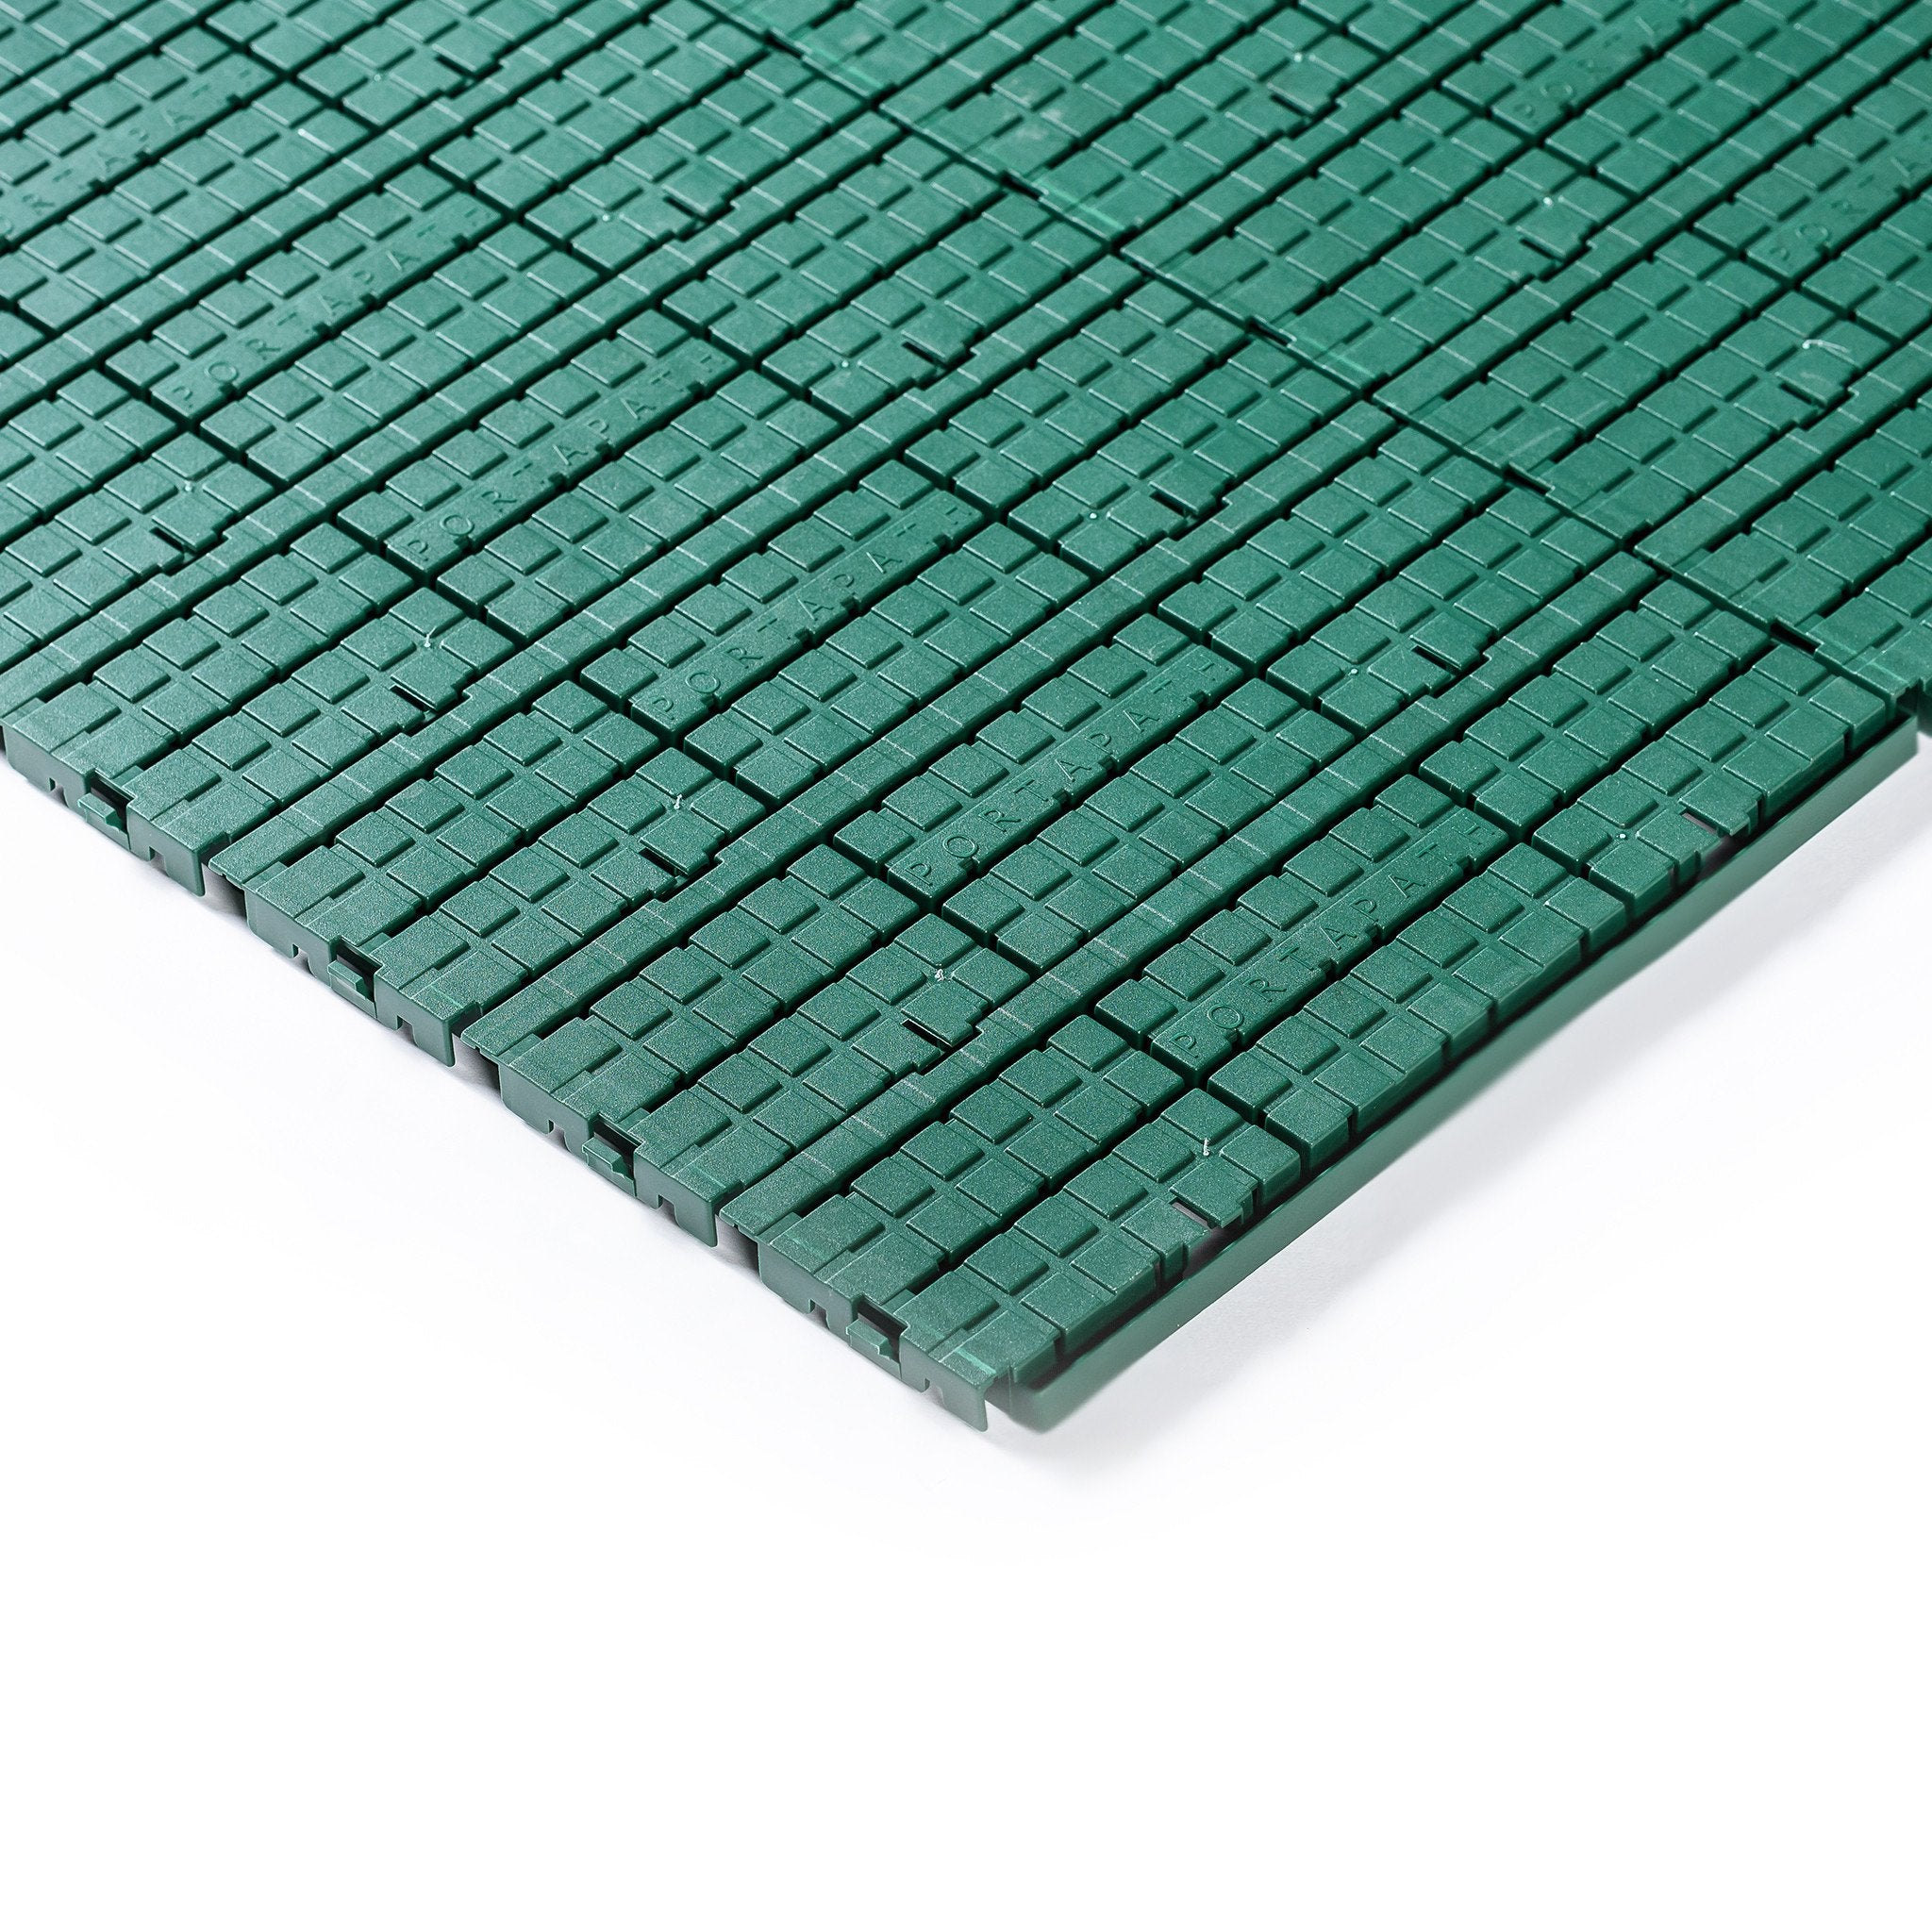 Portapath event flooring | Green